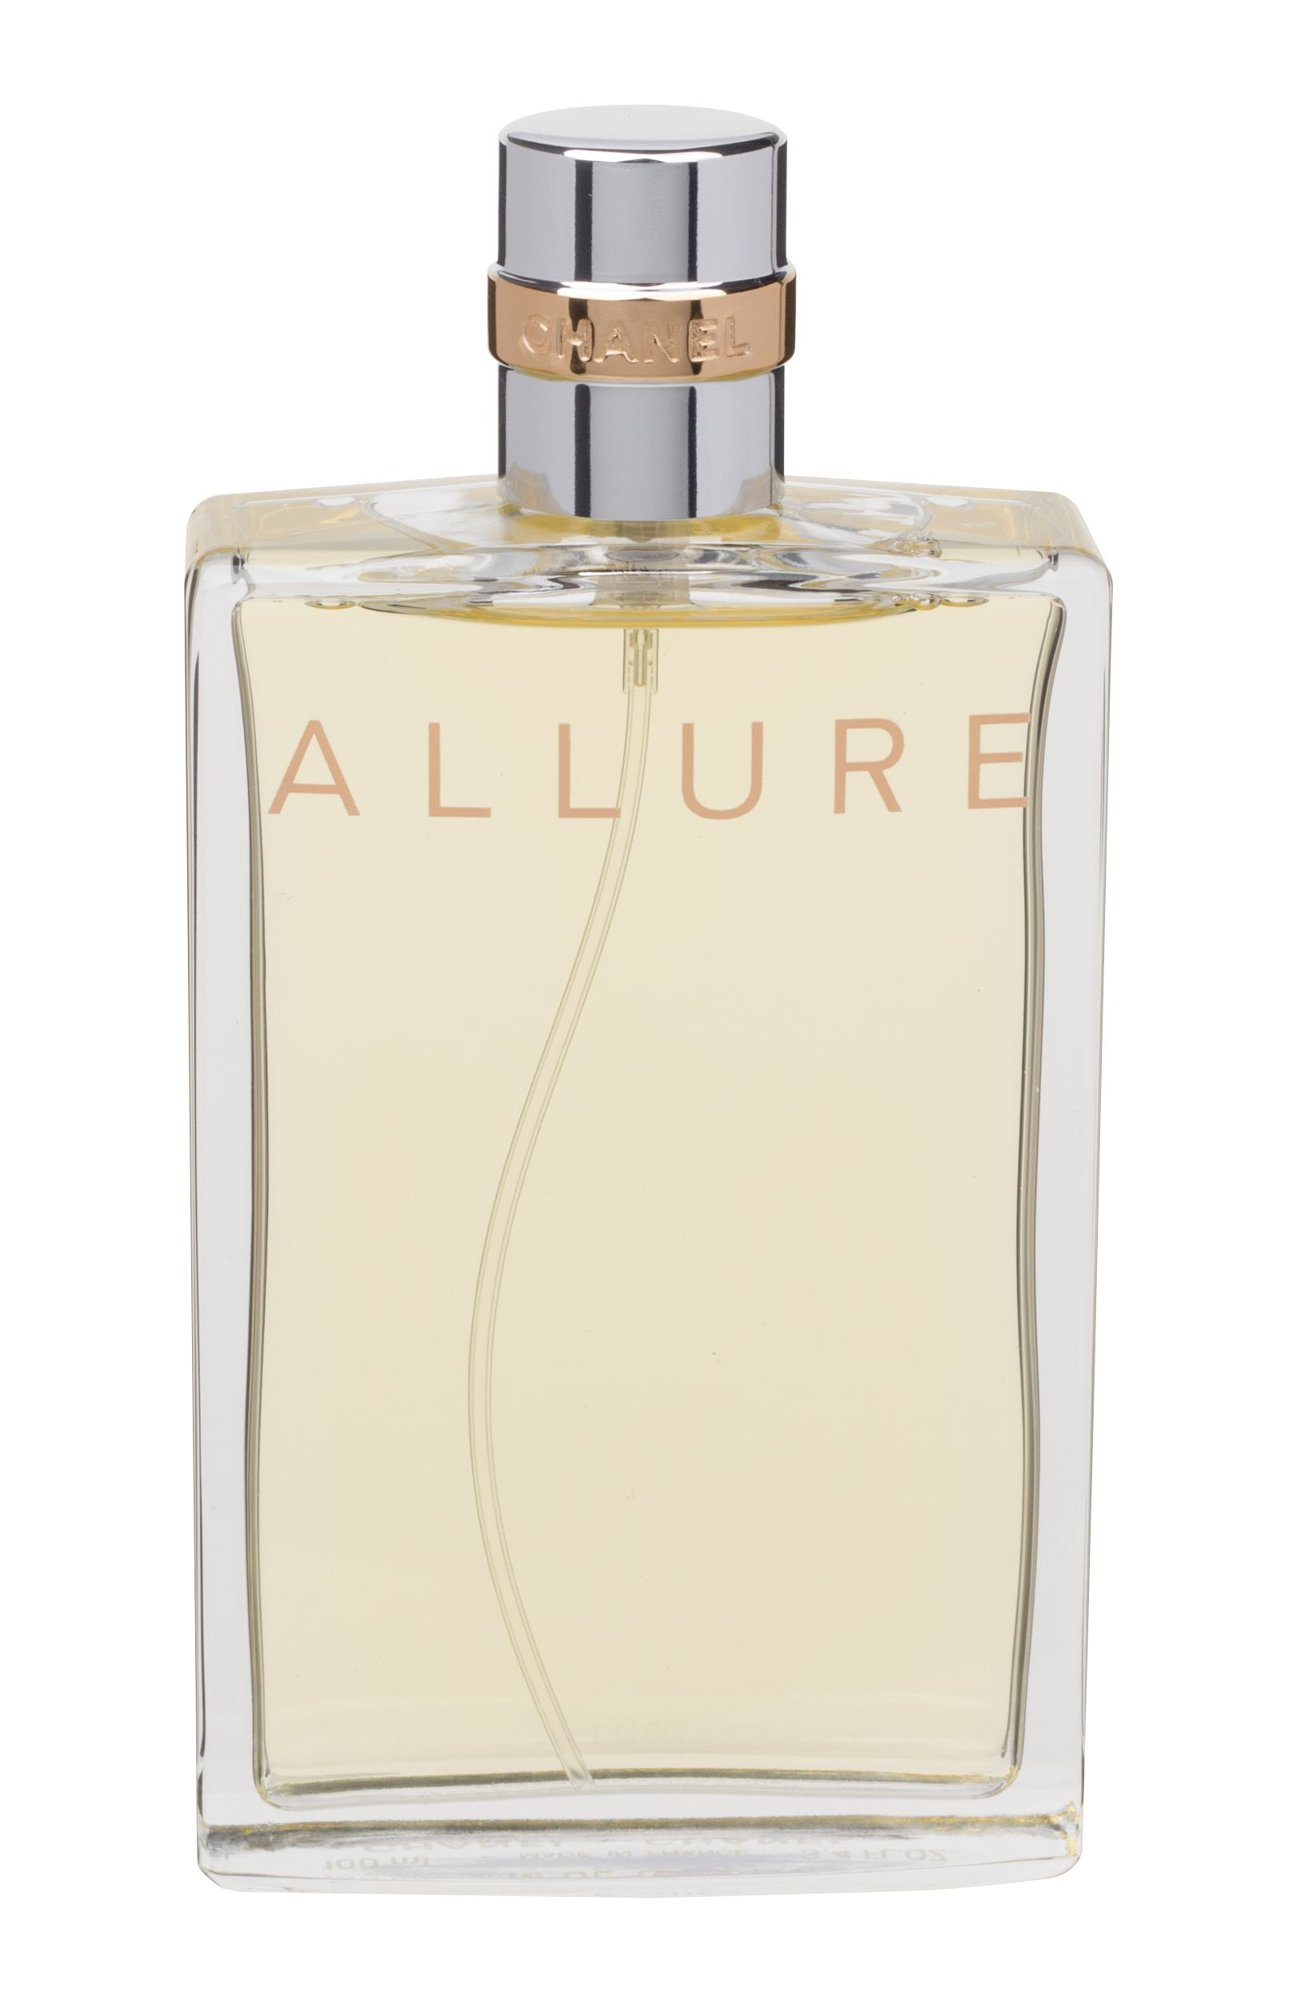 Chanel Allure EDT 100ml